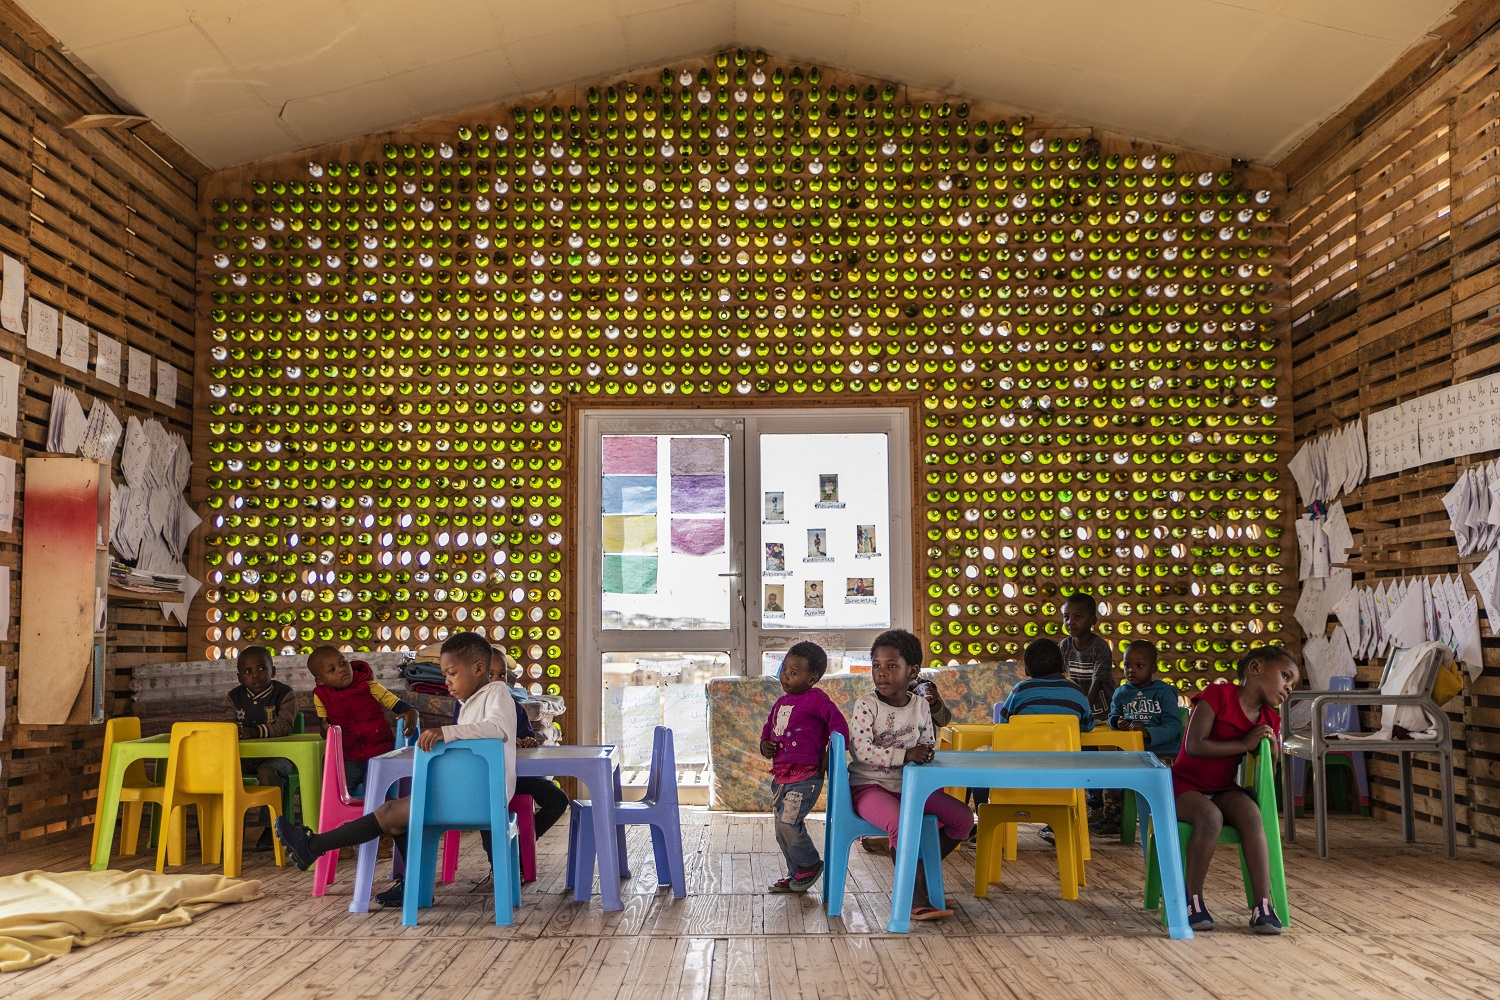 1,500 discarded wine bottles to build this wall at a preschool